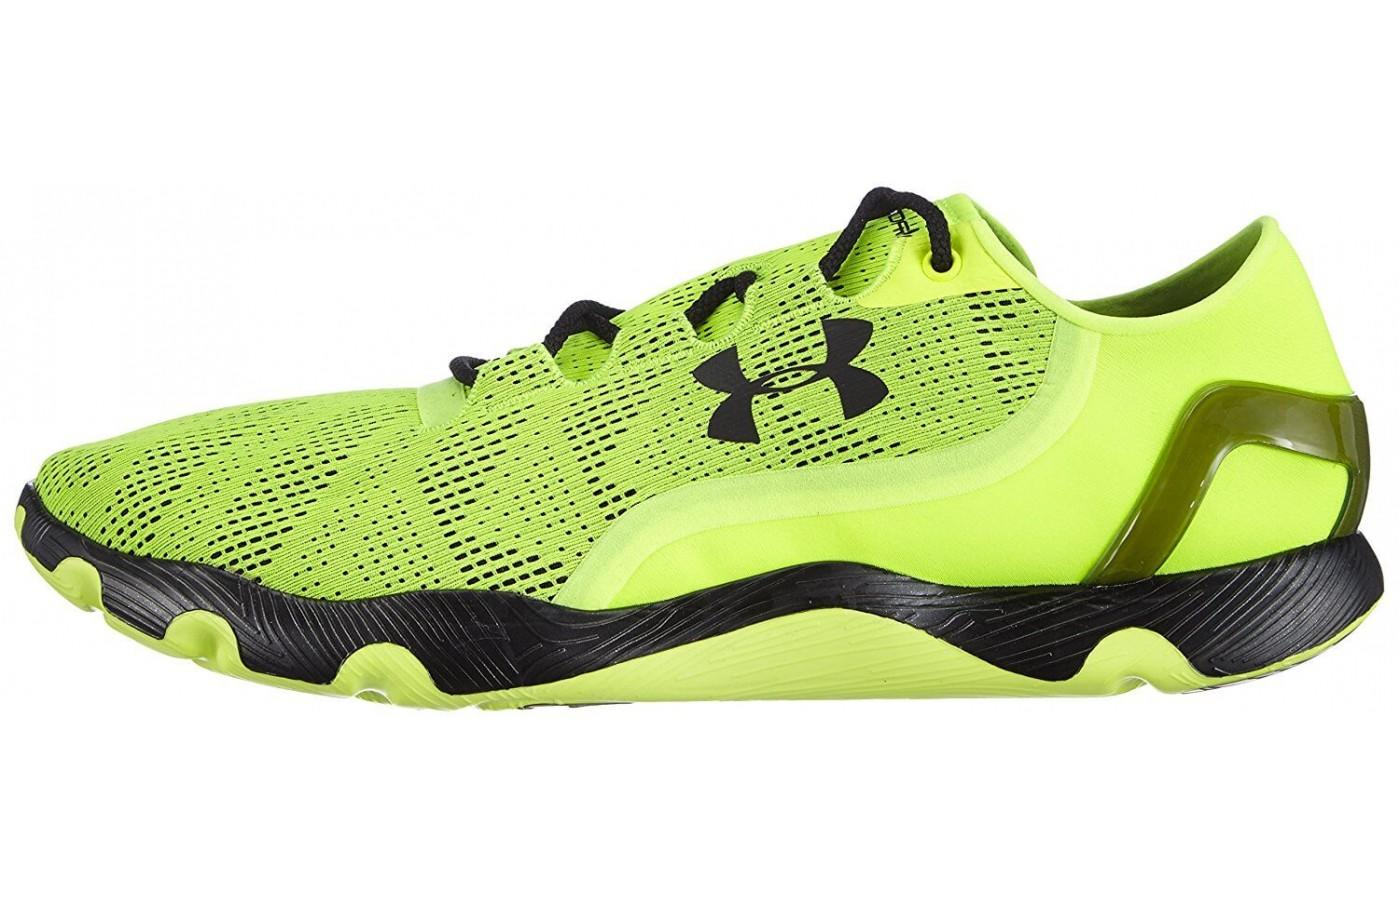 the Armour SpeedForm RC Vent has a seamless heel cup for a locked in fit